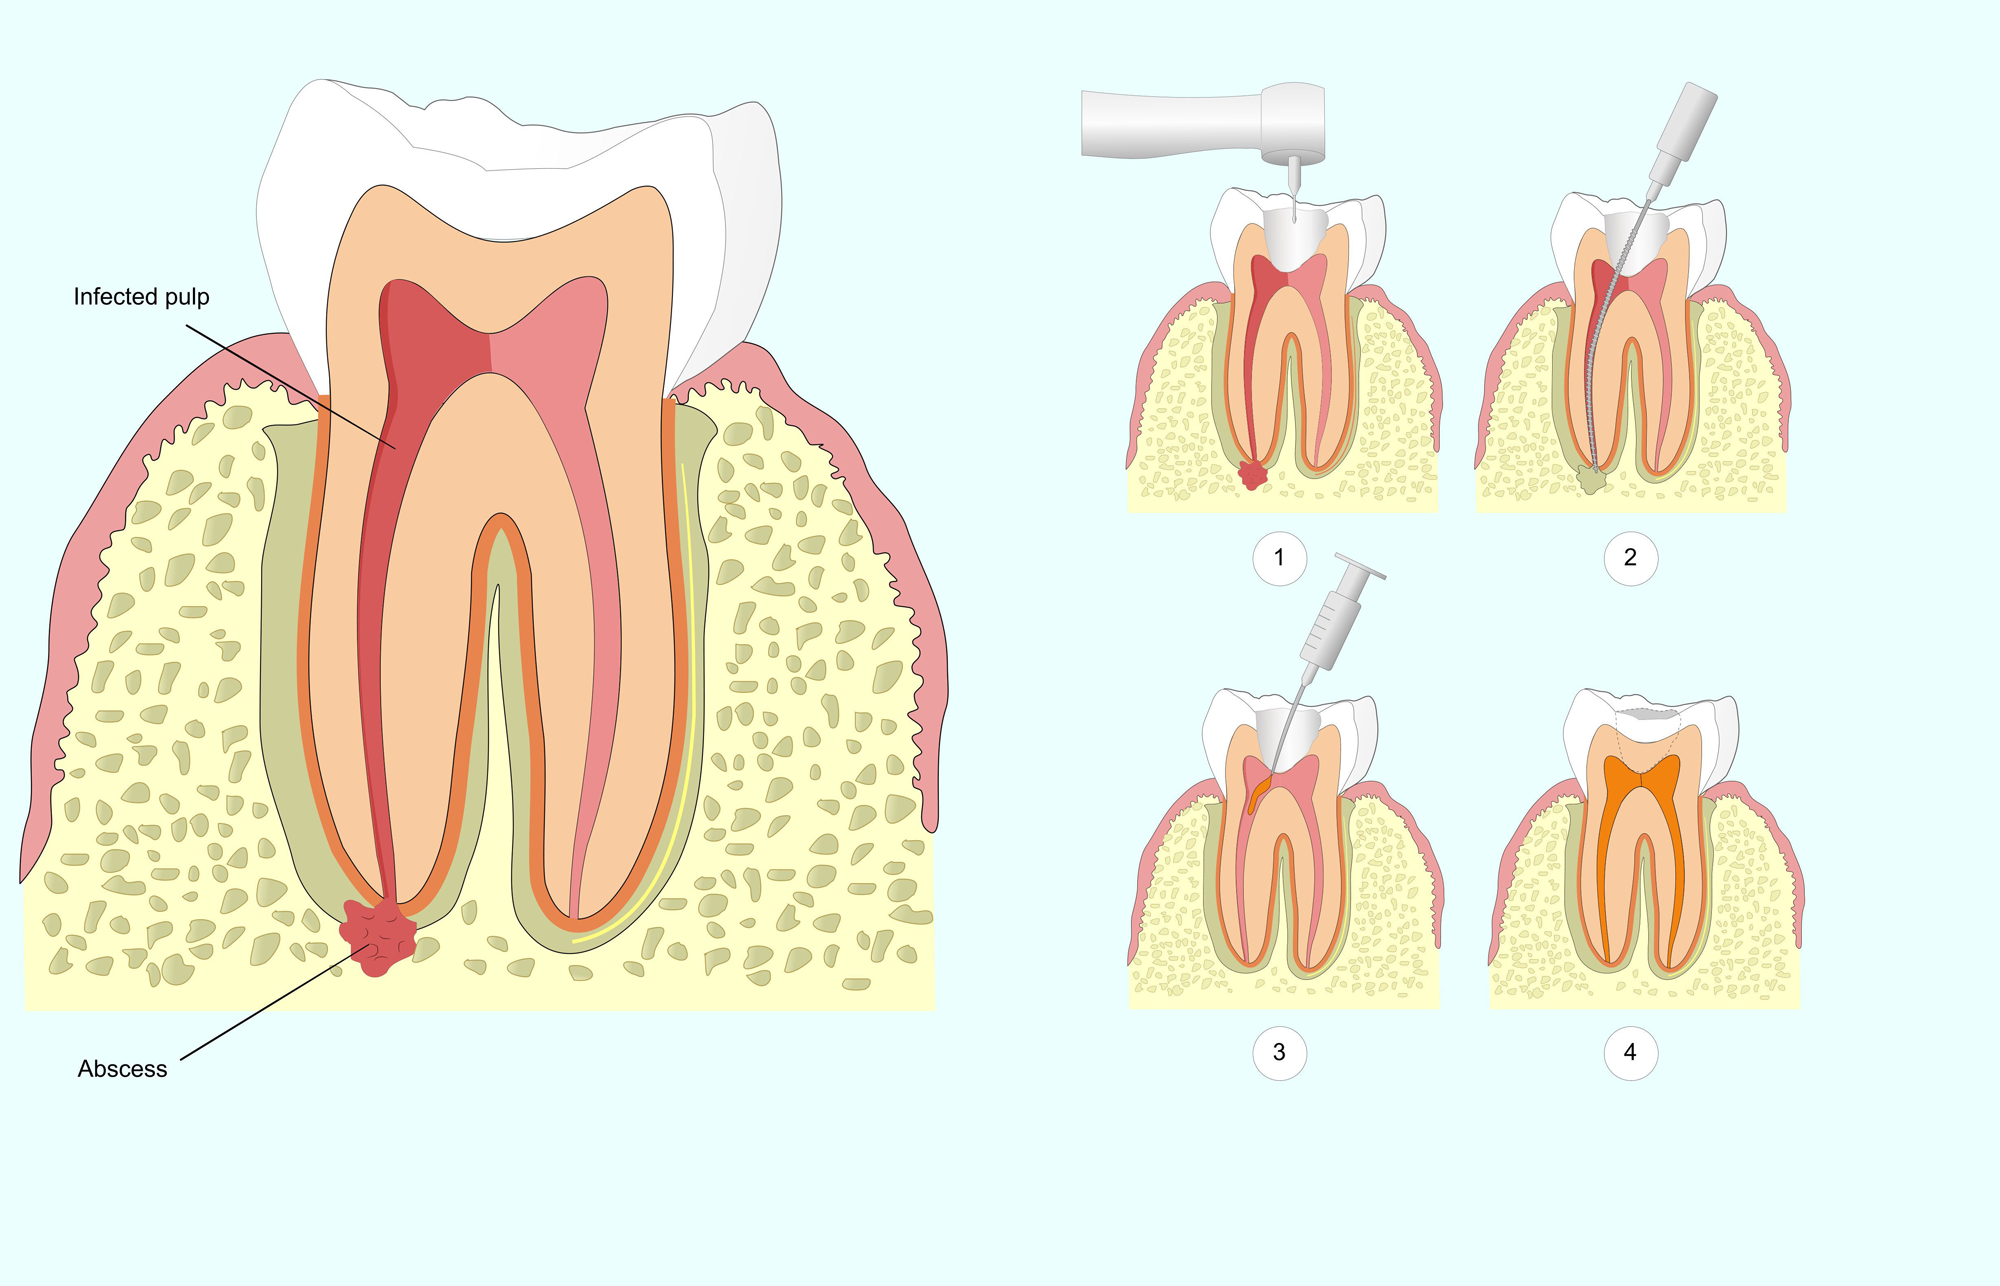 Digital image showing steps of endodontic treatment